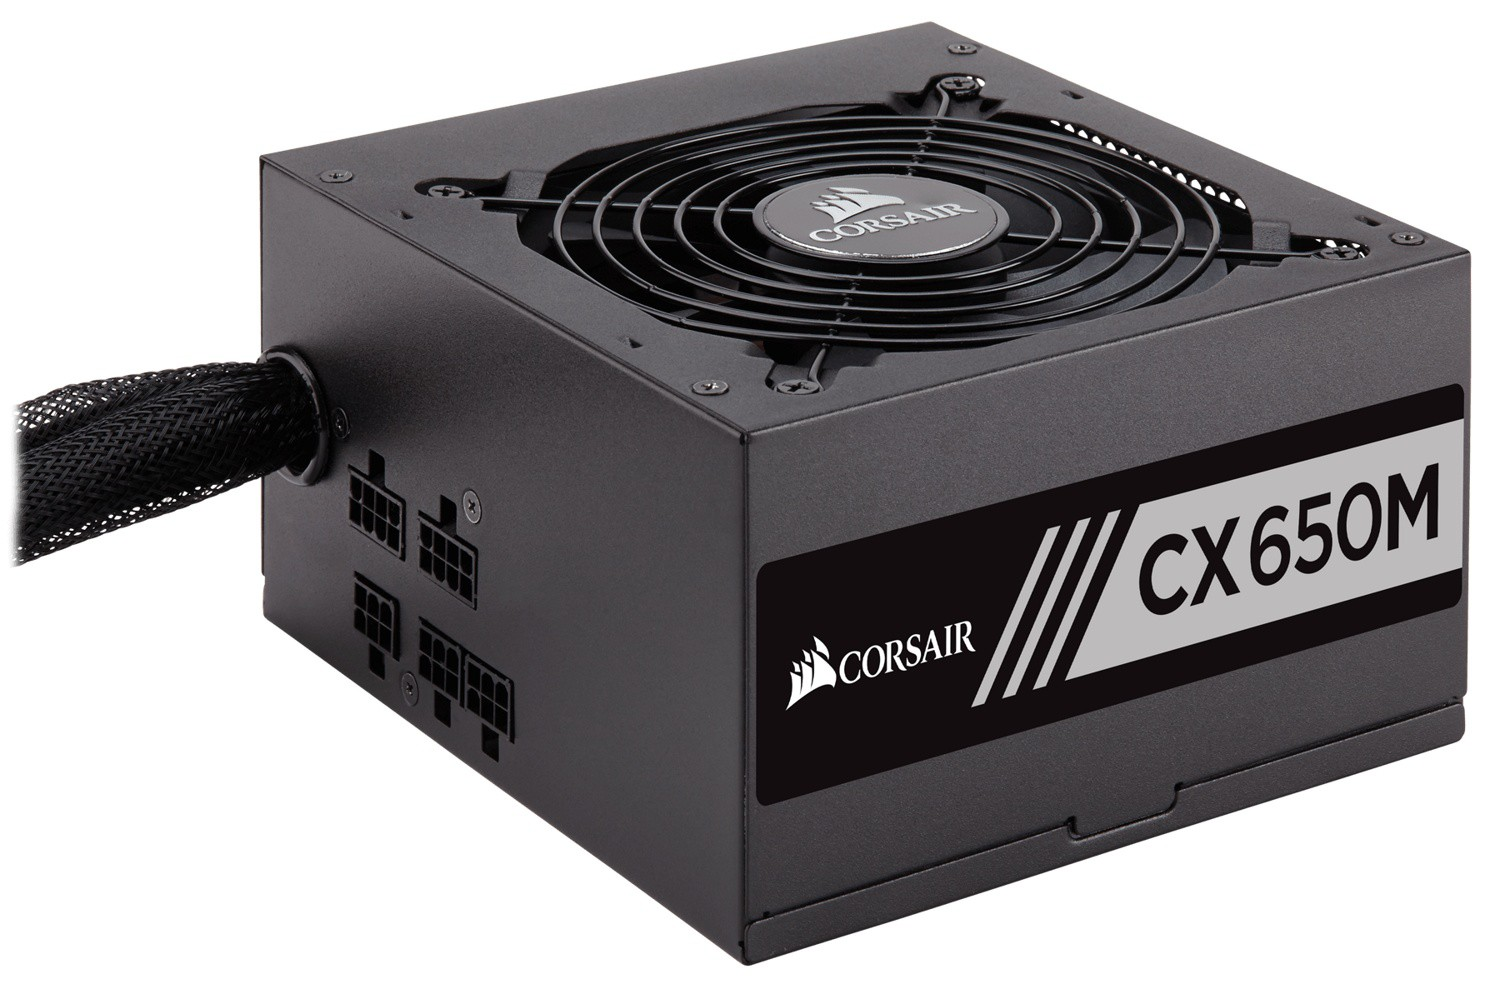 Блок питания 650W Corsair CX650M (CP-9020103-EU) (120mm, 24+8pin, 2x6/8pin, 4xMolex, 6xSATA, aPFC, Cable Management, 80 PLUS Bronze)